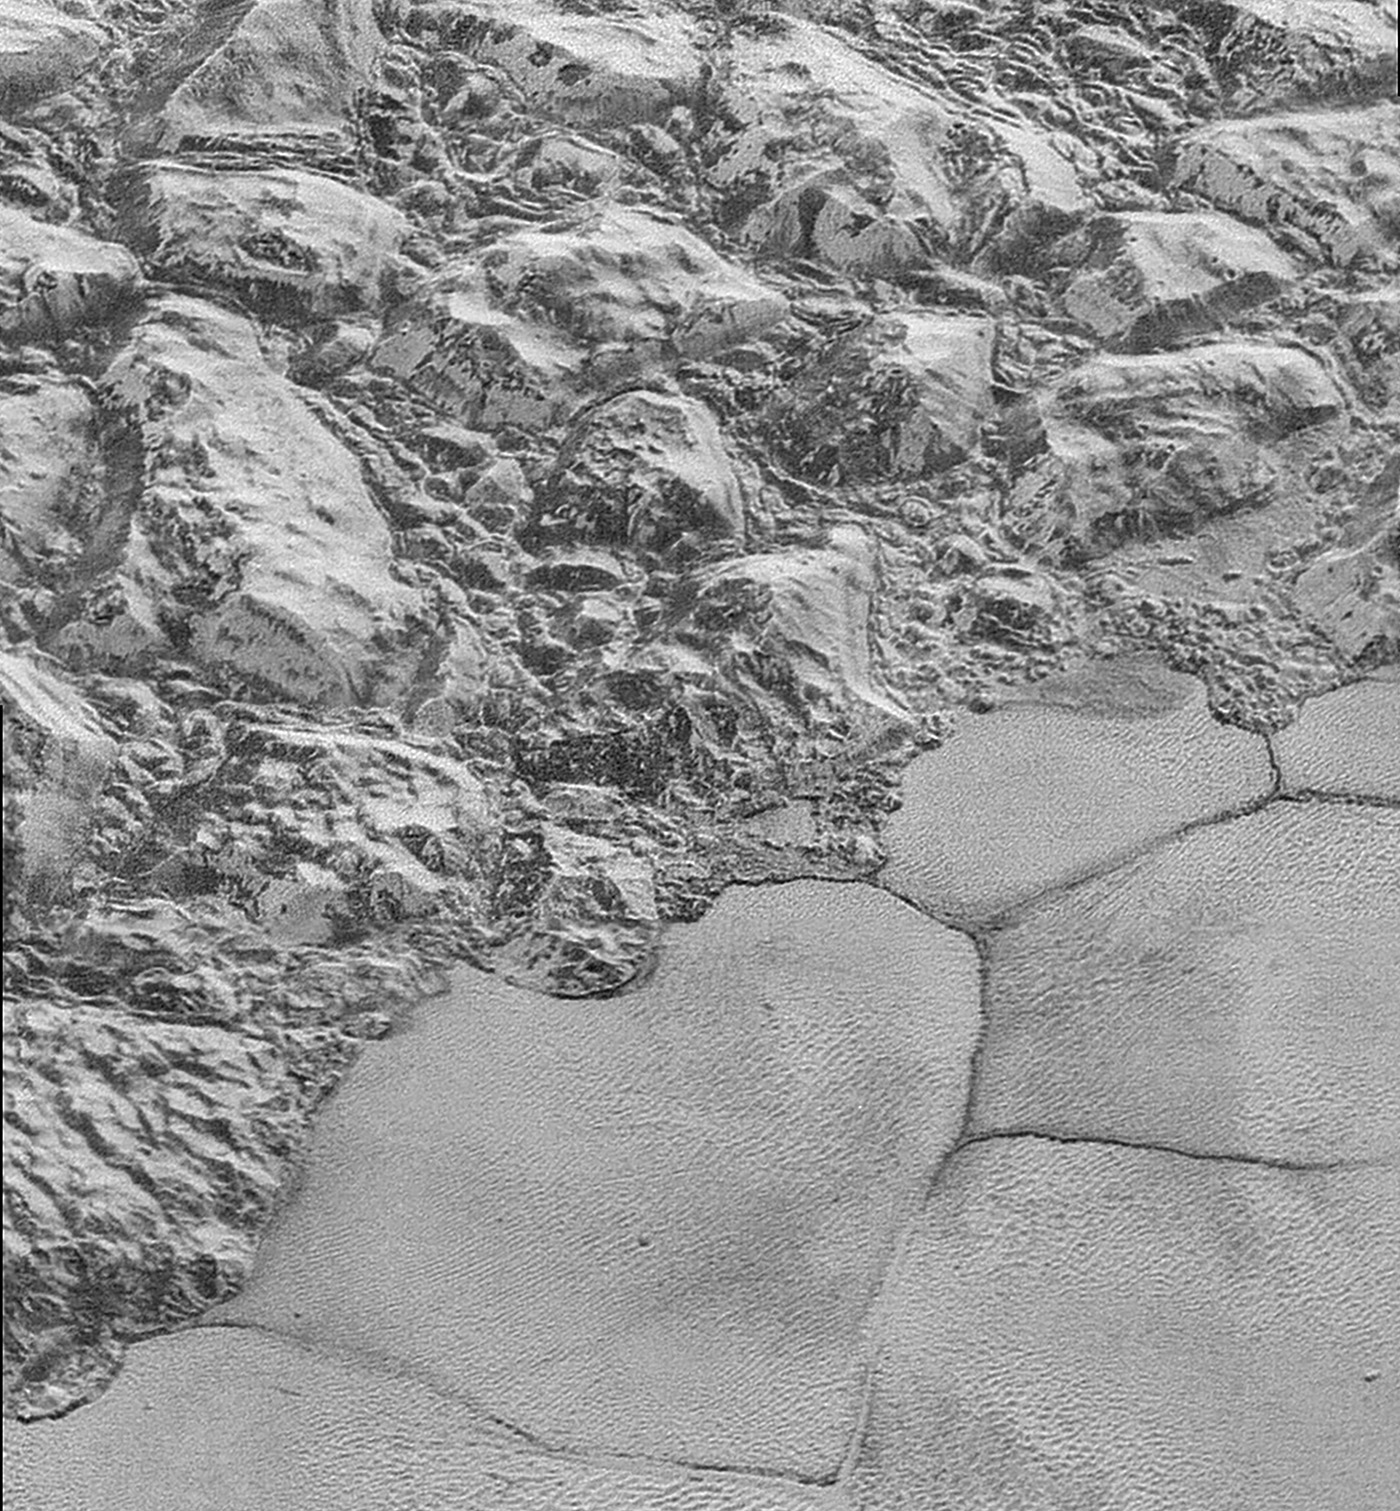 NASA shows the sharpest ever close-up photos of Pluto